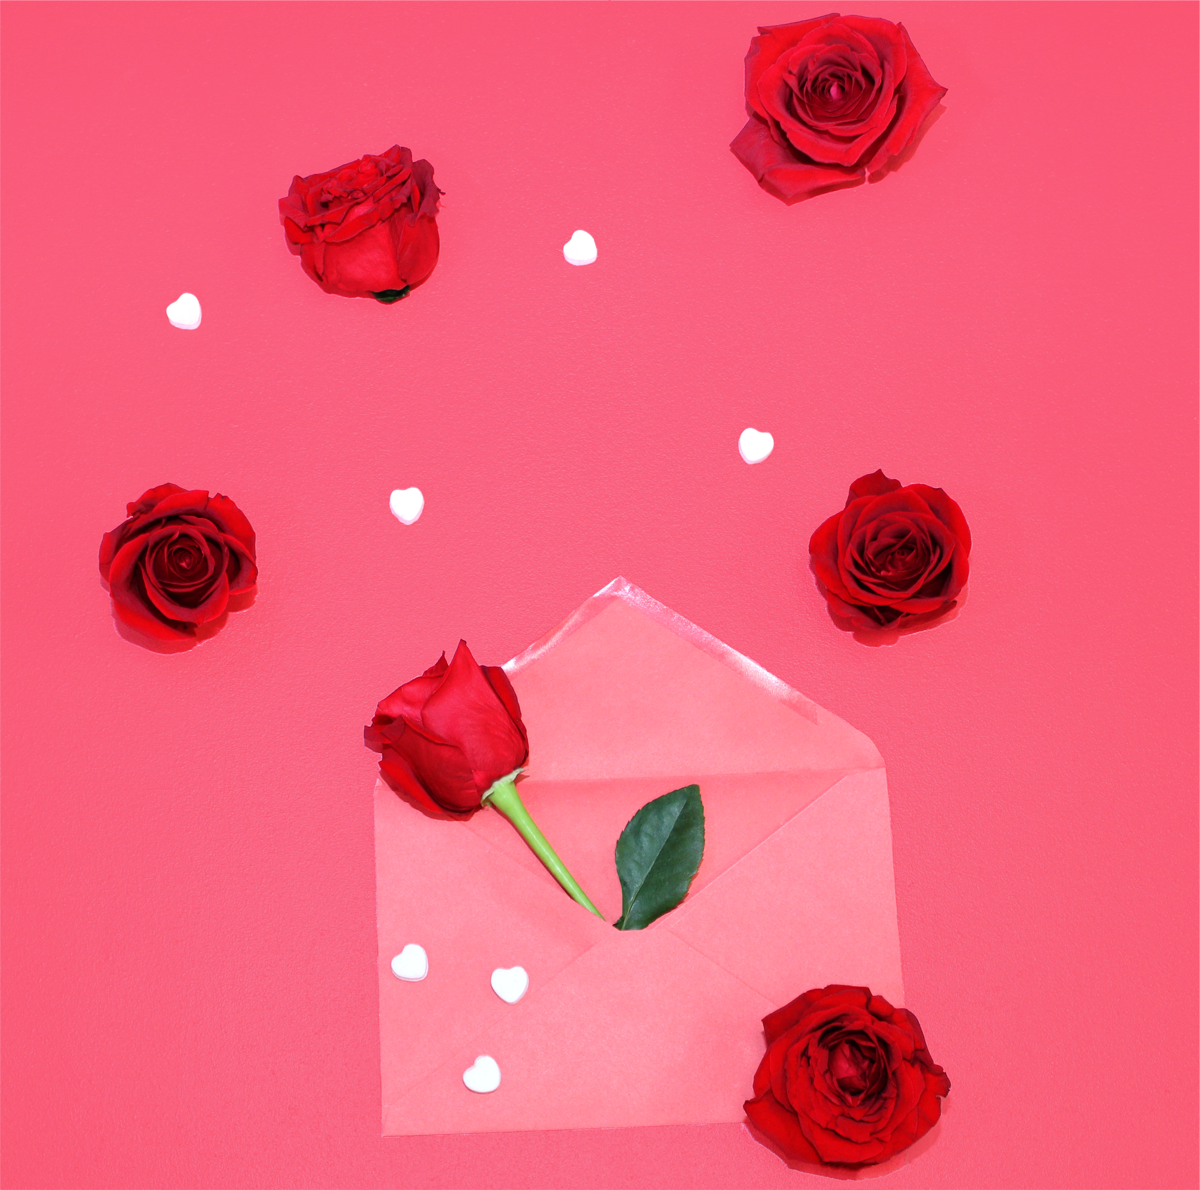 Red rose buds and white heart candies coming out of a pink envelope, surronded by hot pink background